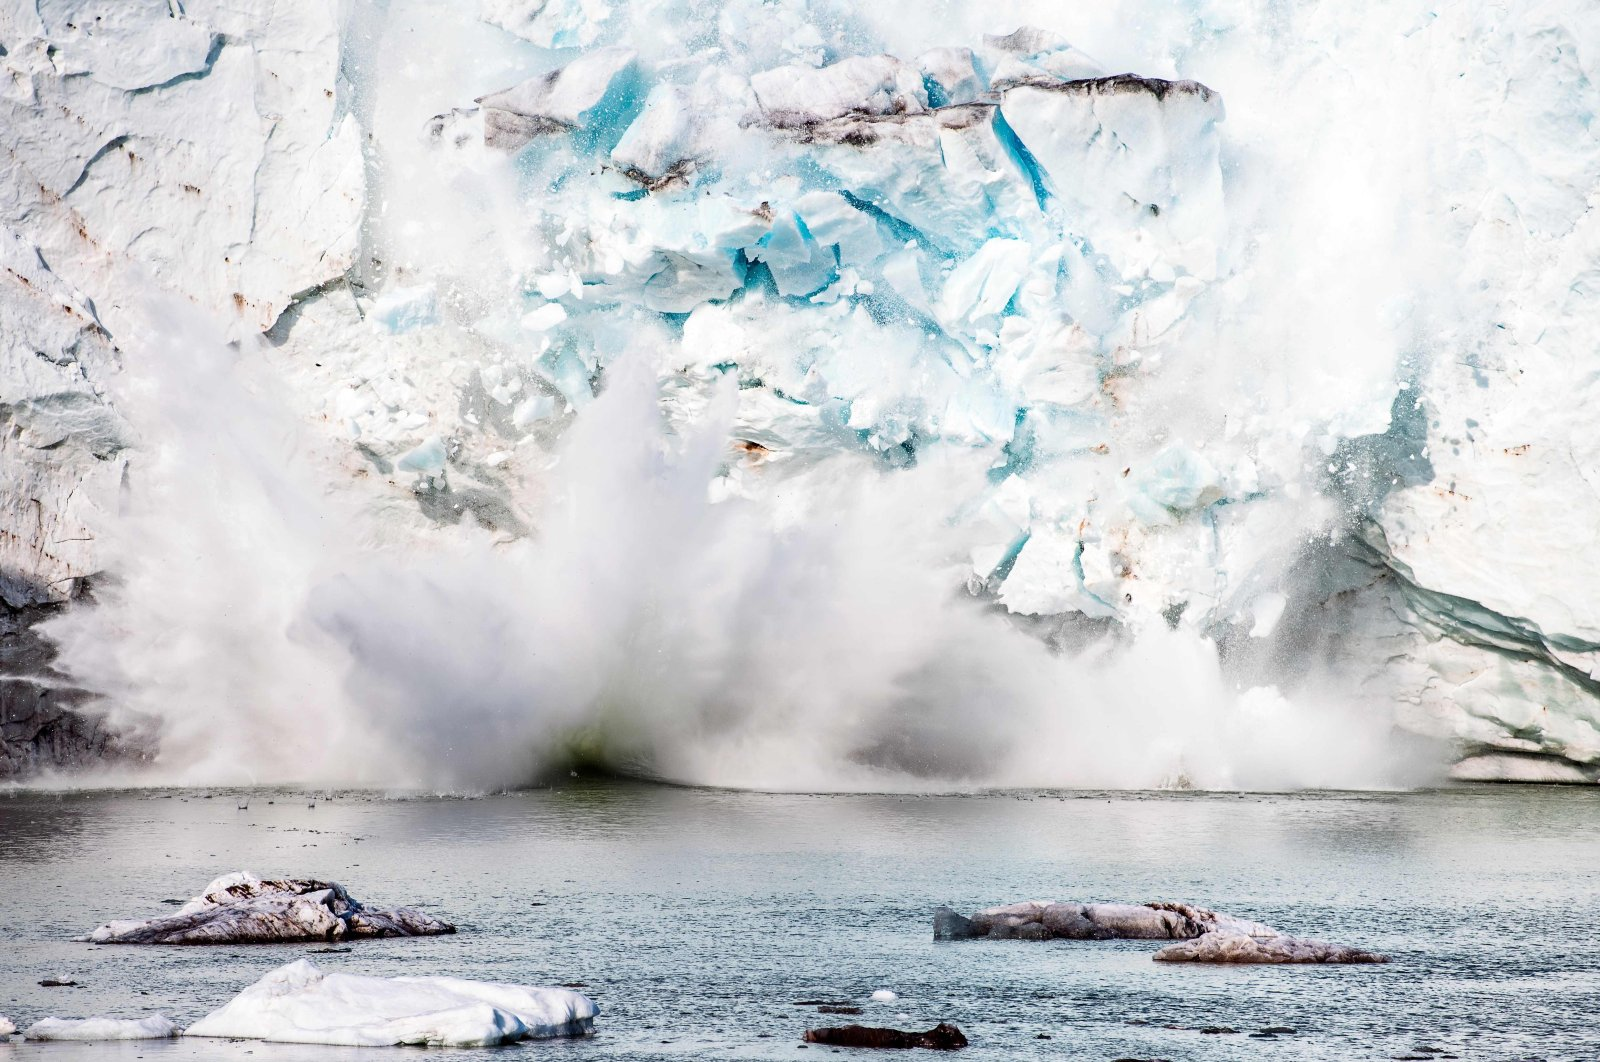 This file photo shows an iceberg calving with a mass of ice breaking away from the Apusiajik glacier, near Kulusuk, a settlement in the Sermersooq municipality located on the island of the same name on the southeastern shore of Greenland, Aug. 17, 2019. (AFP Photo)